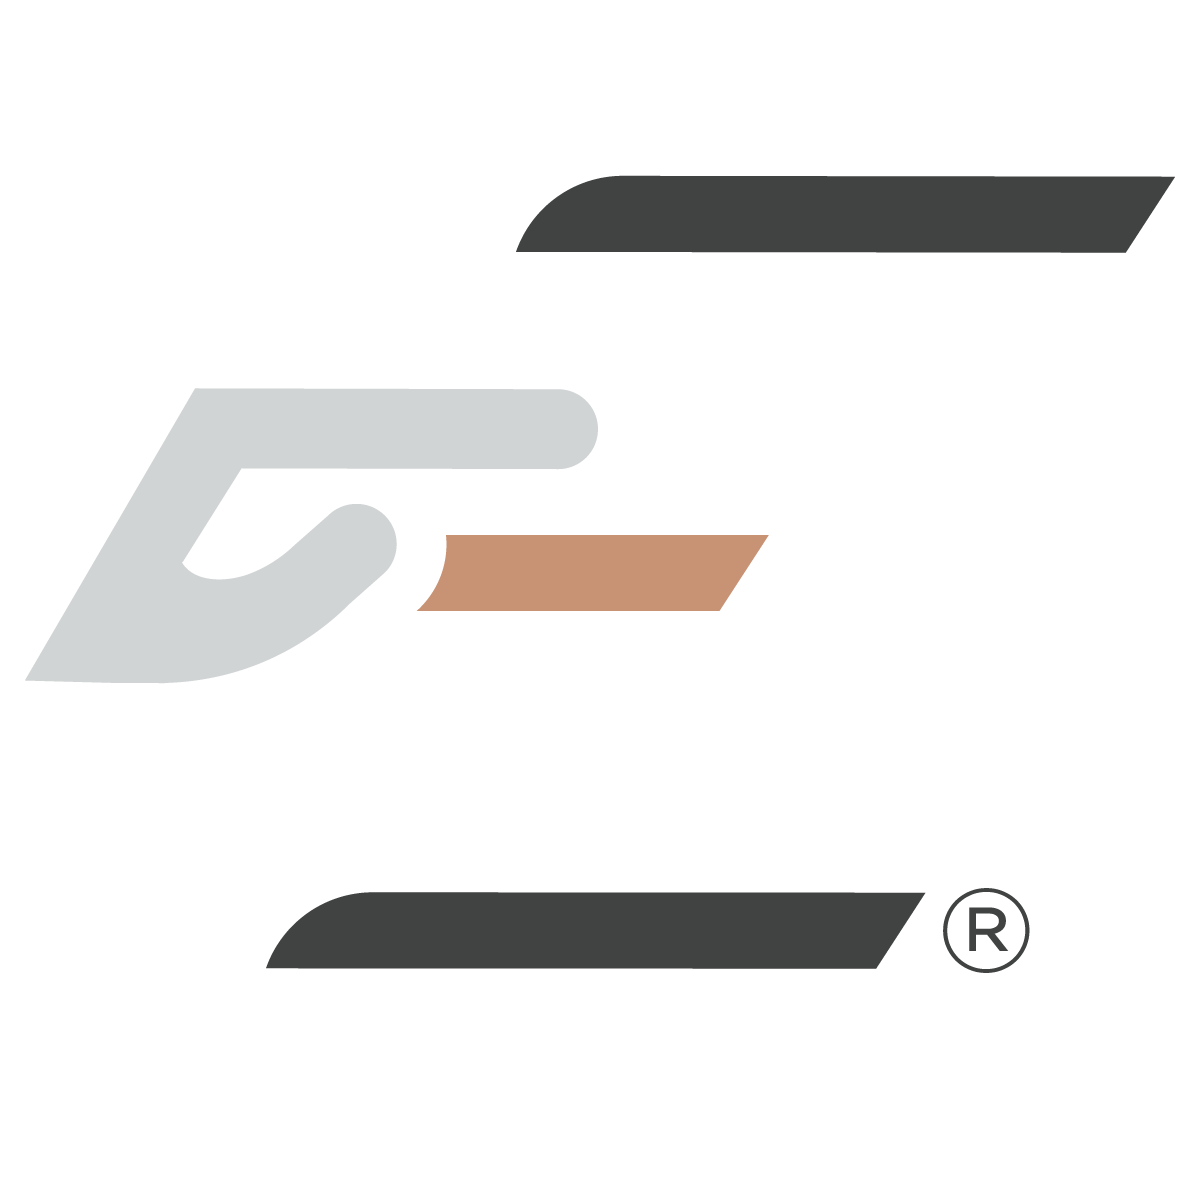 Equitecture logo for DEI training by The Equitect company